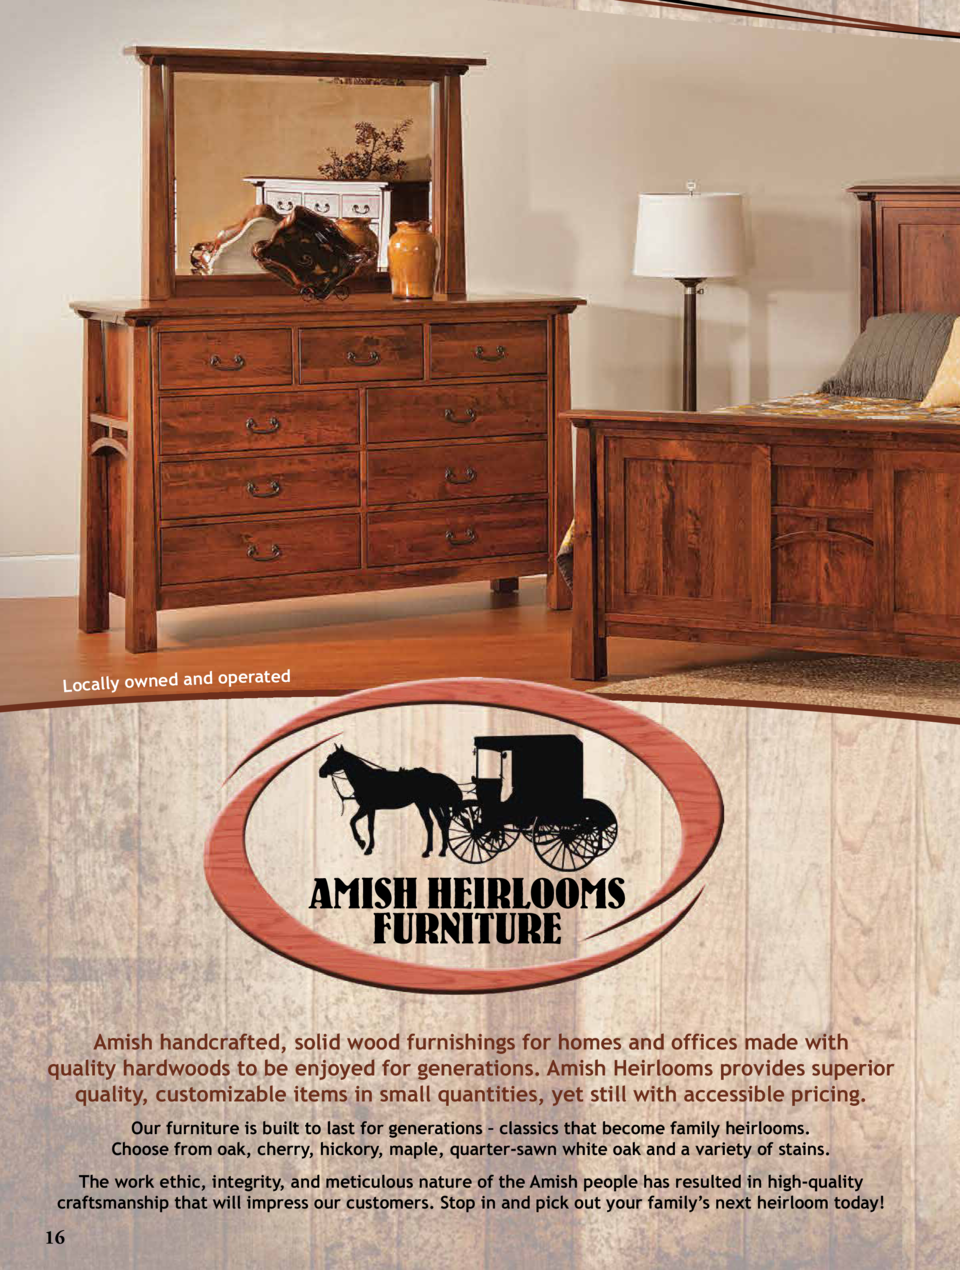 operated Locally owned and  amishh eirloom s  .ca  Amish handcrafted, solid wood furnishings for homes and offices made wi...